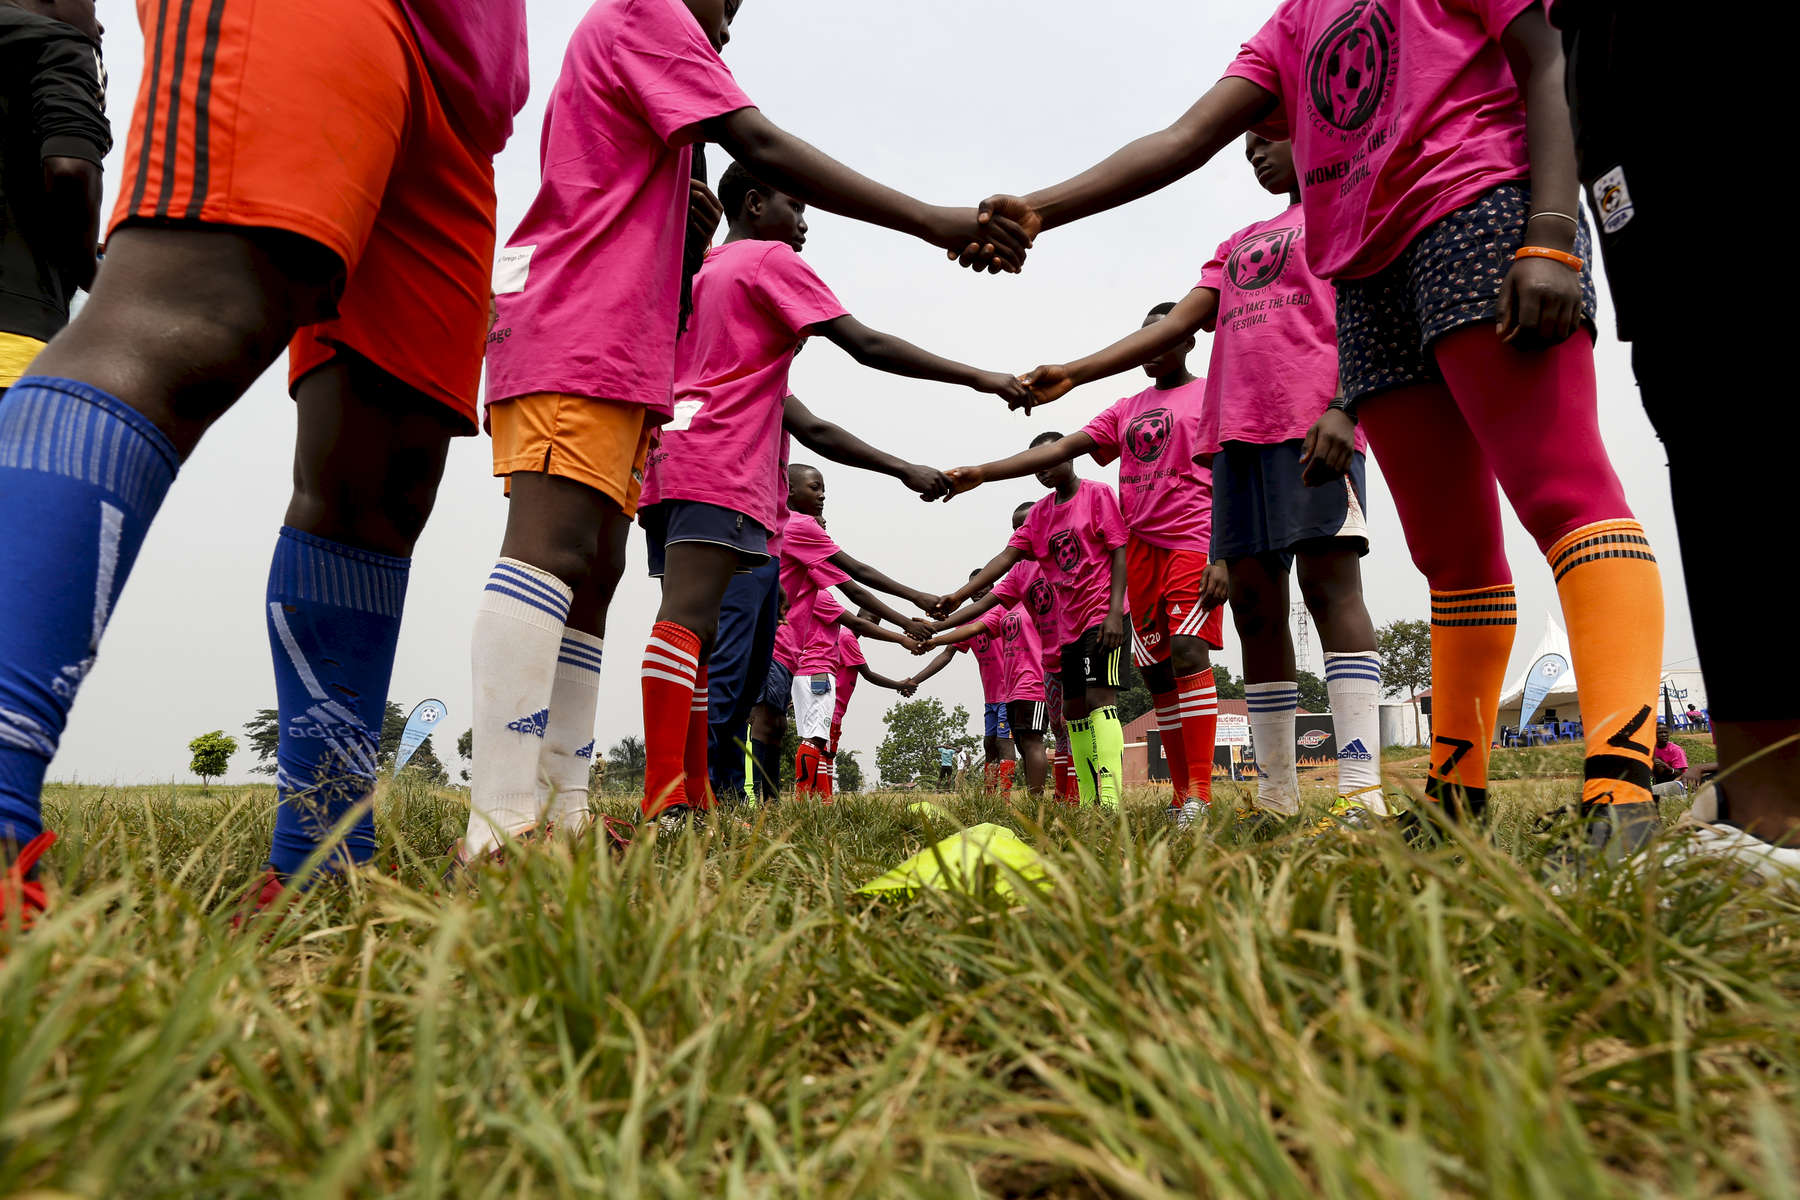 Participants shake hands during a game at the {quote}Women take the Lead{quote} festival, a soccer event for Congolese refugee youth in Kampala, Uganda on December 10, 2018.